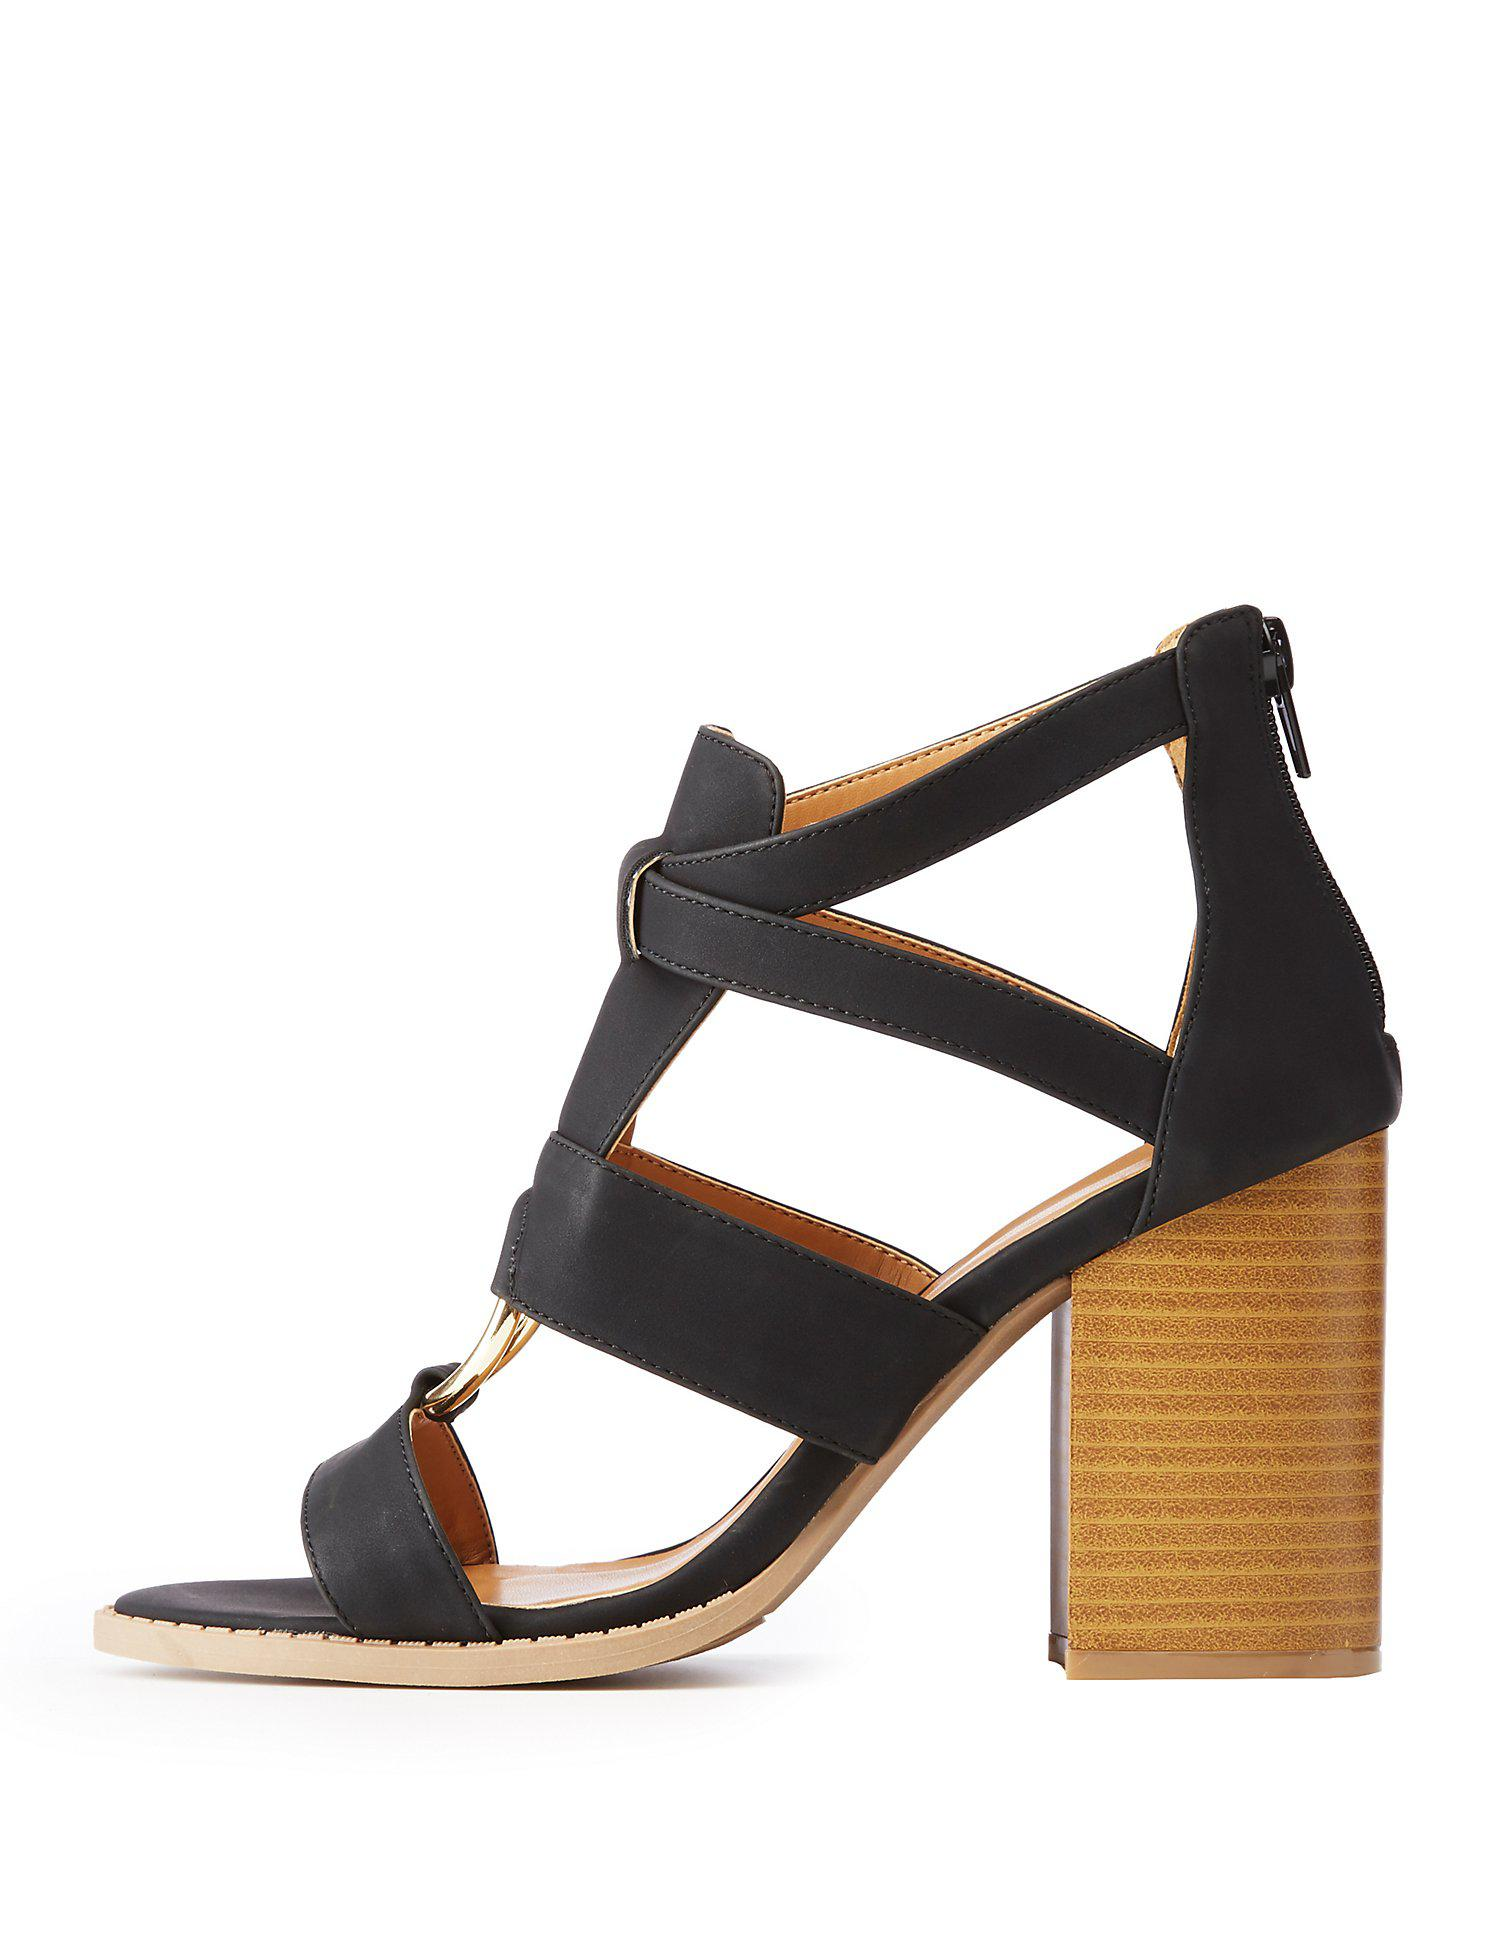 eeb6ded24d5 Lyst - Charlotte Russe Qupid O Ring Sandals in Black